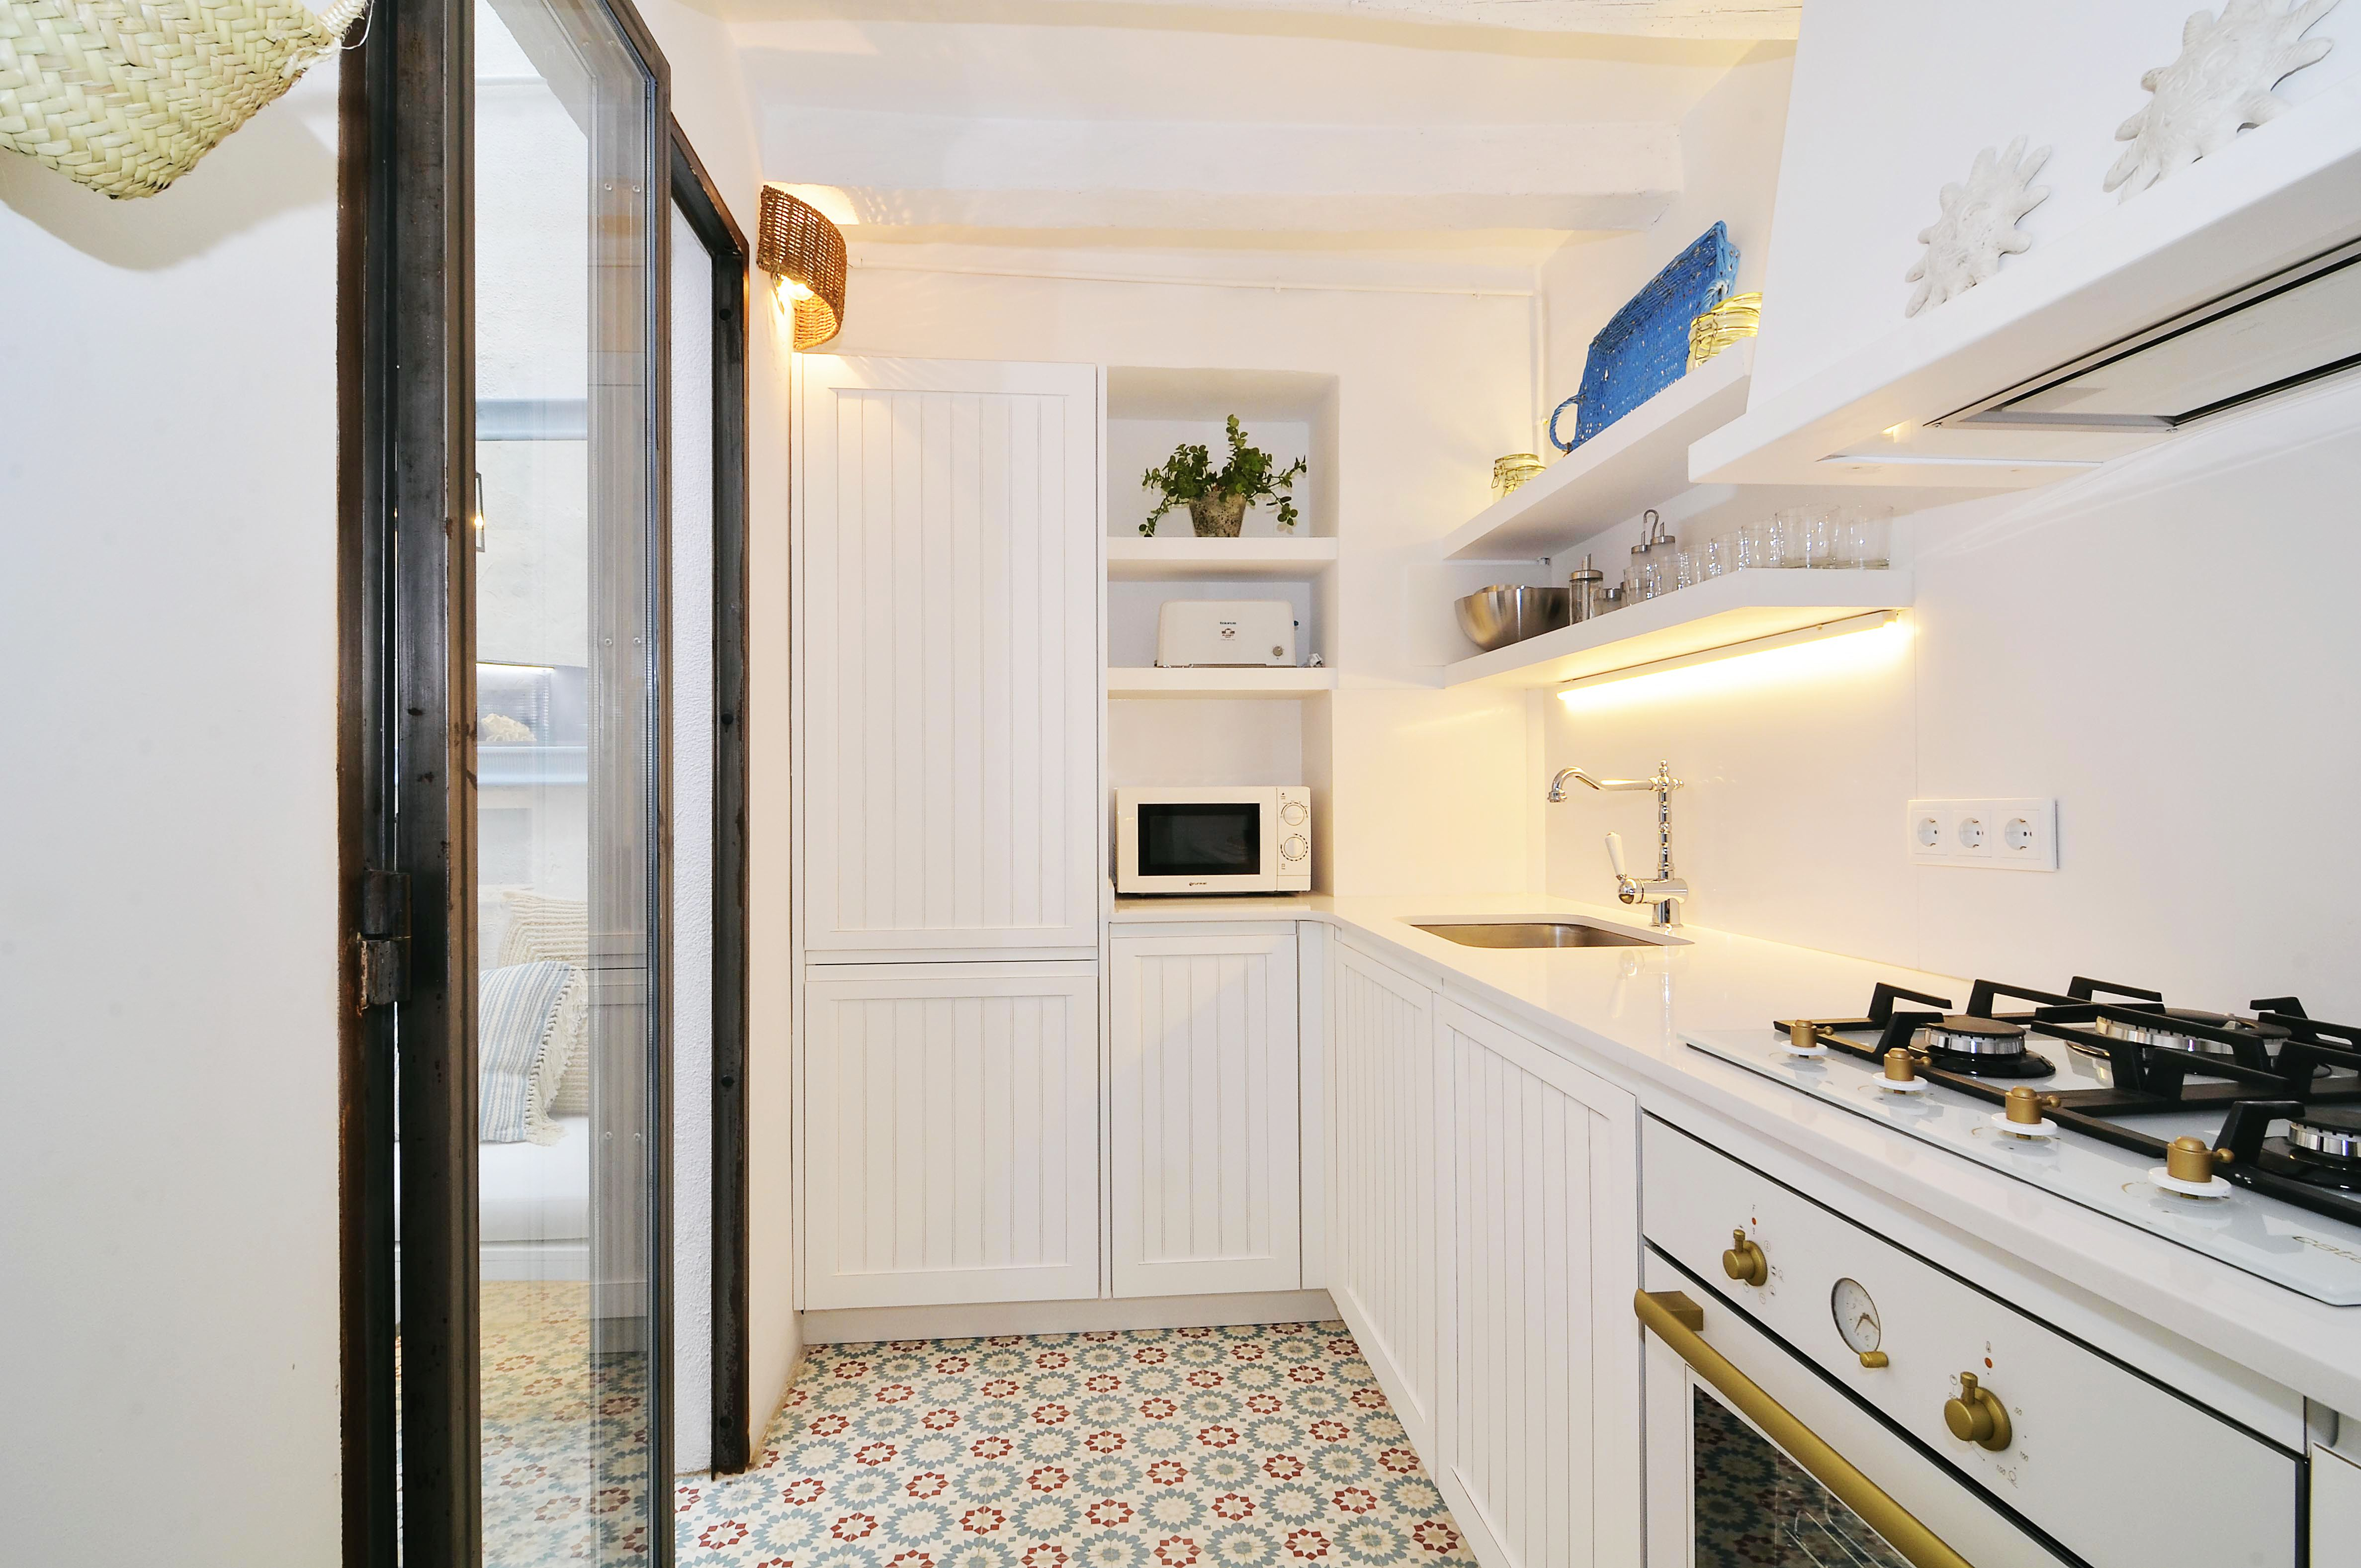 House tour: old fisherman's house in Sitges: white kitchen with tile floor